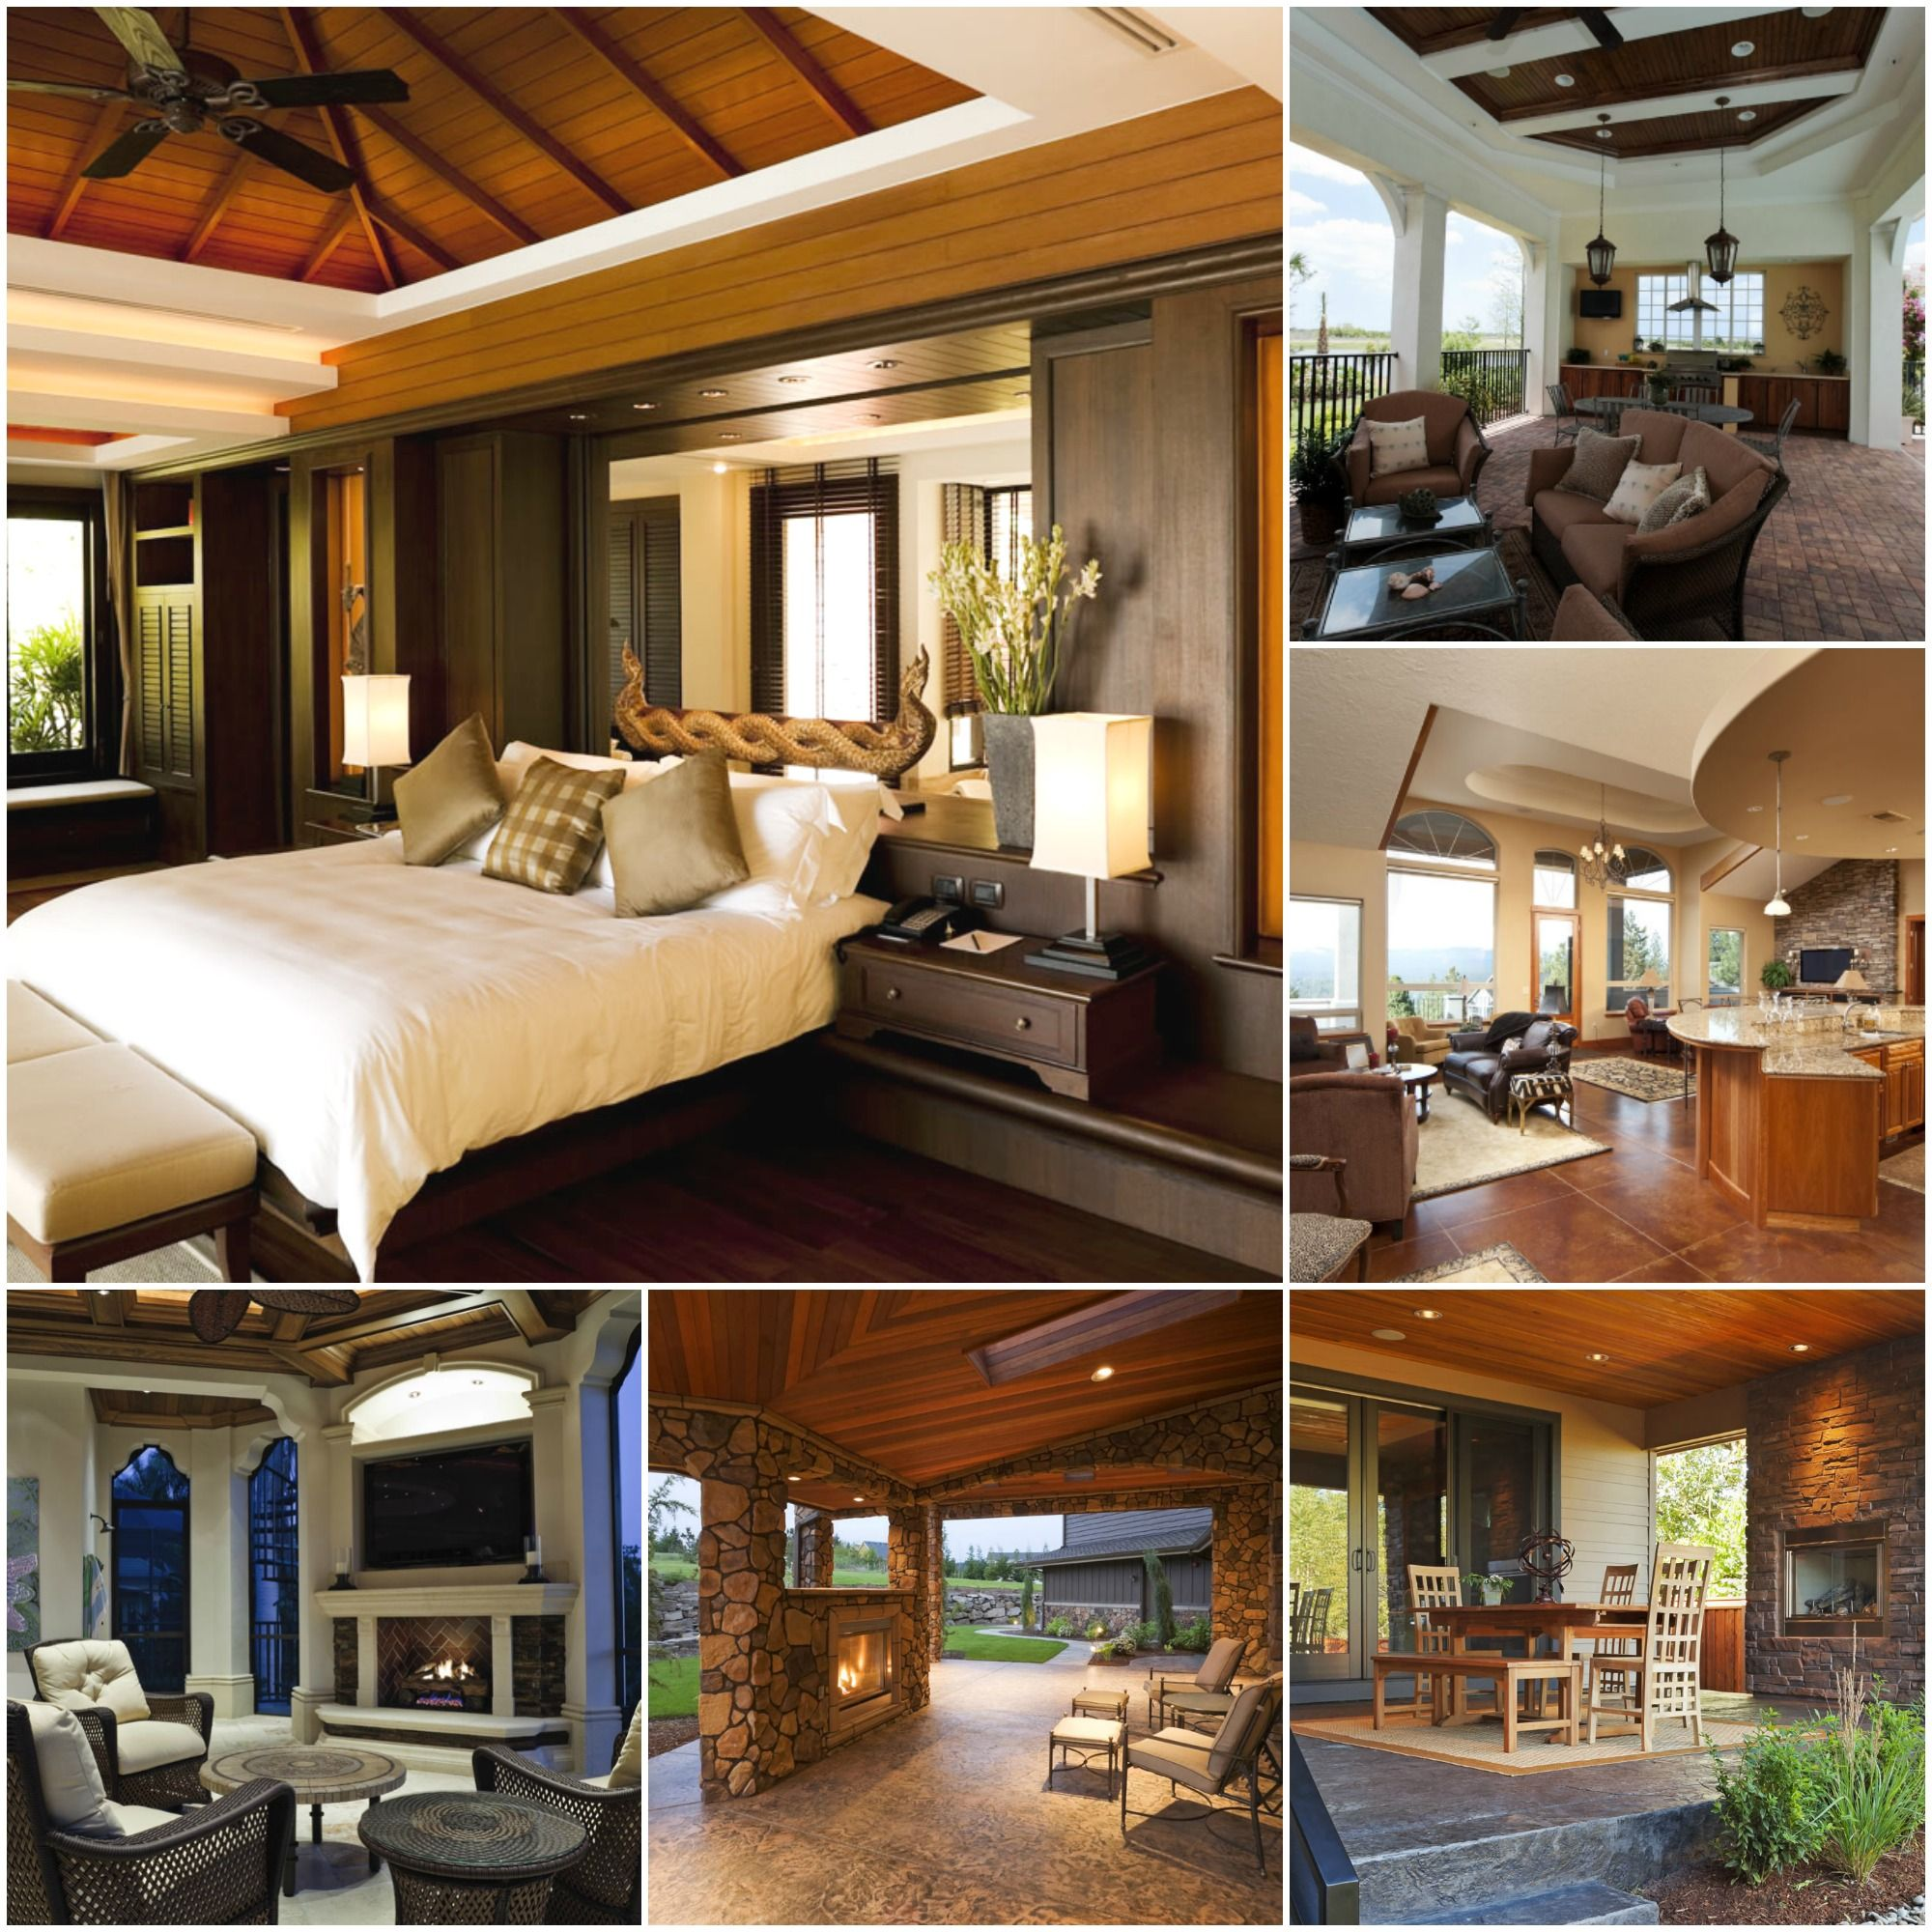 Revamp Your Home with CostEffective Remodeling Services